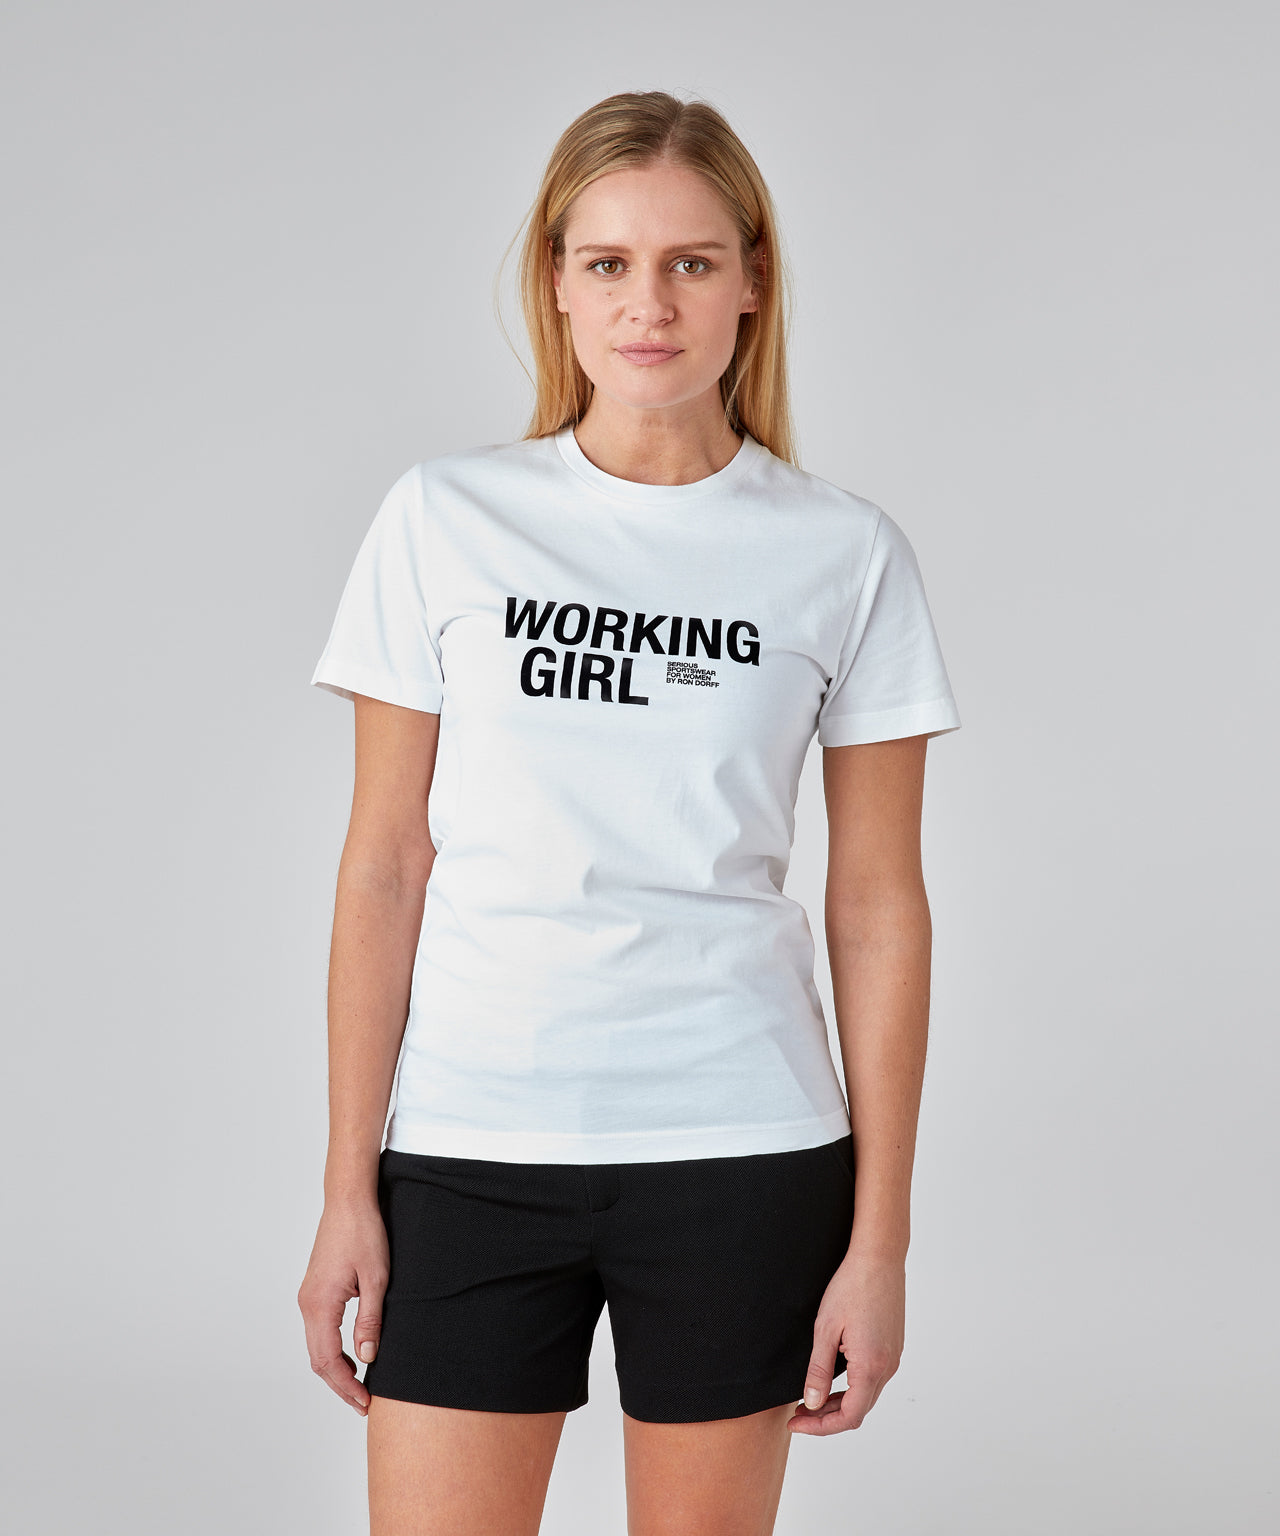 T-Shirt WORKING GIRL His For Her - white